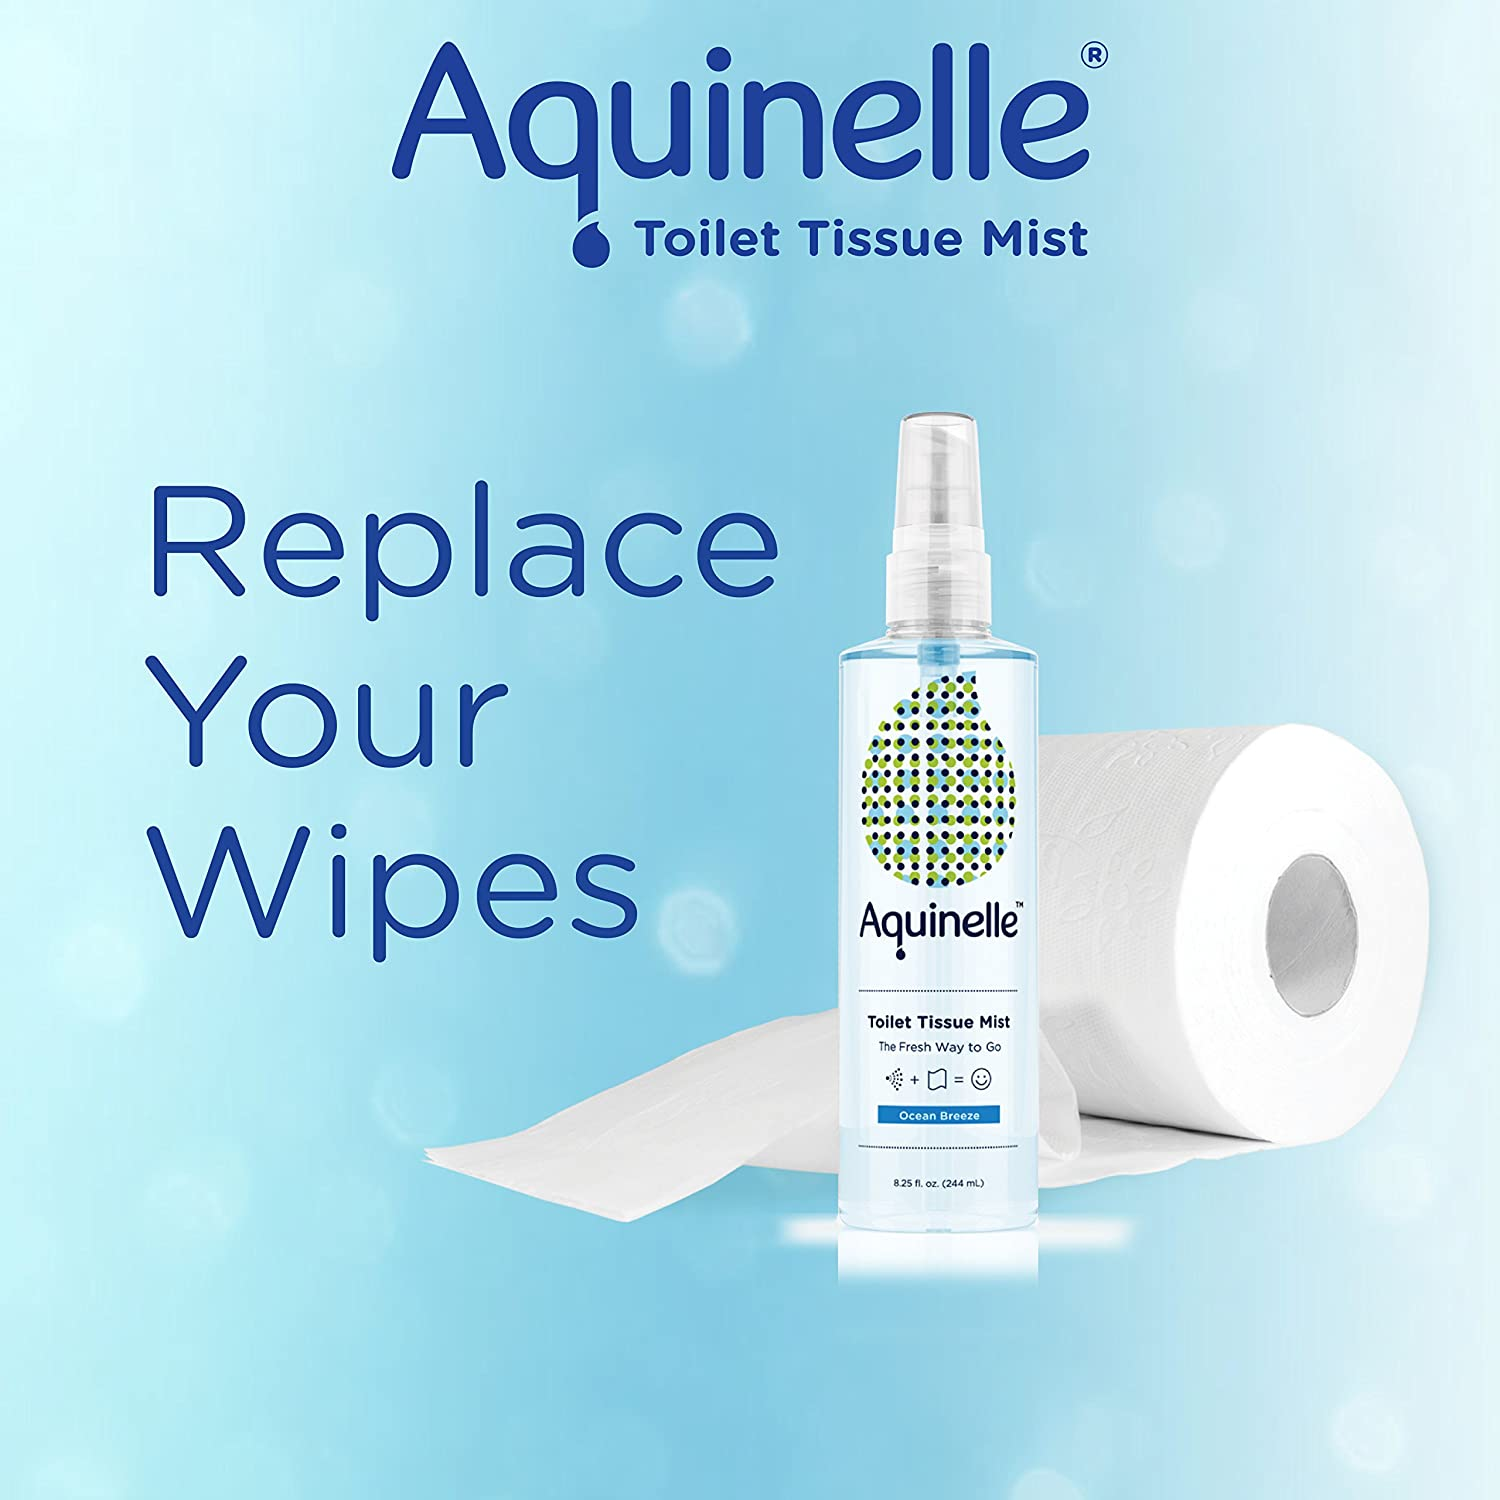 Amazon.com: Aquinelle Toilet Tissue Mist , Eco-Friendly & Non ...